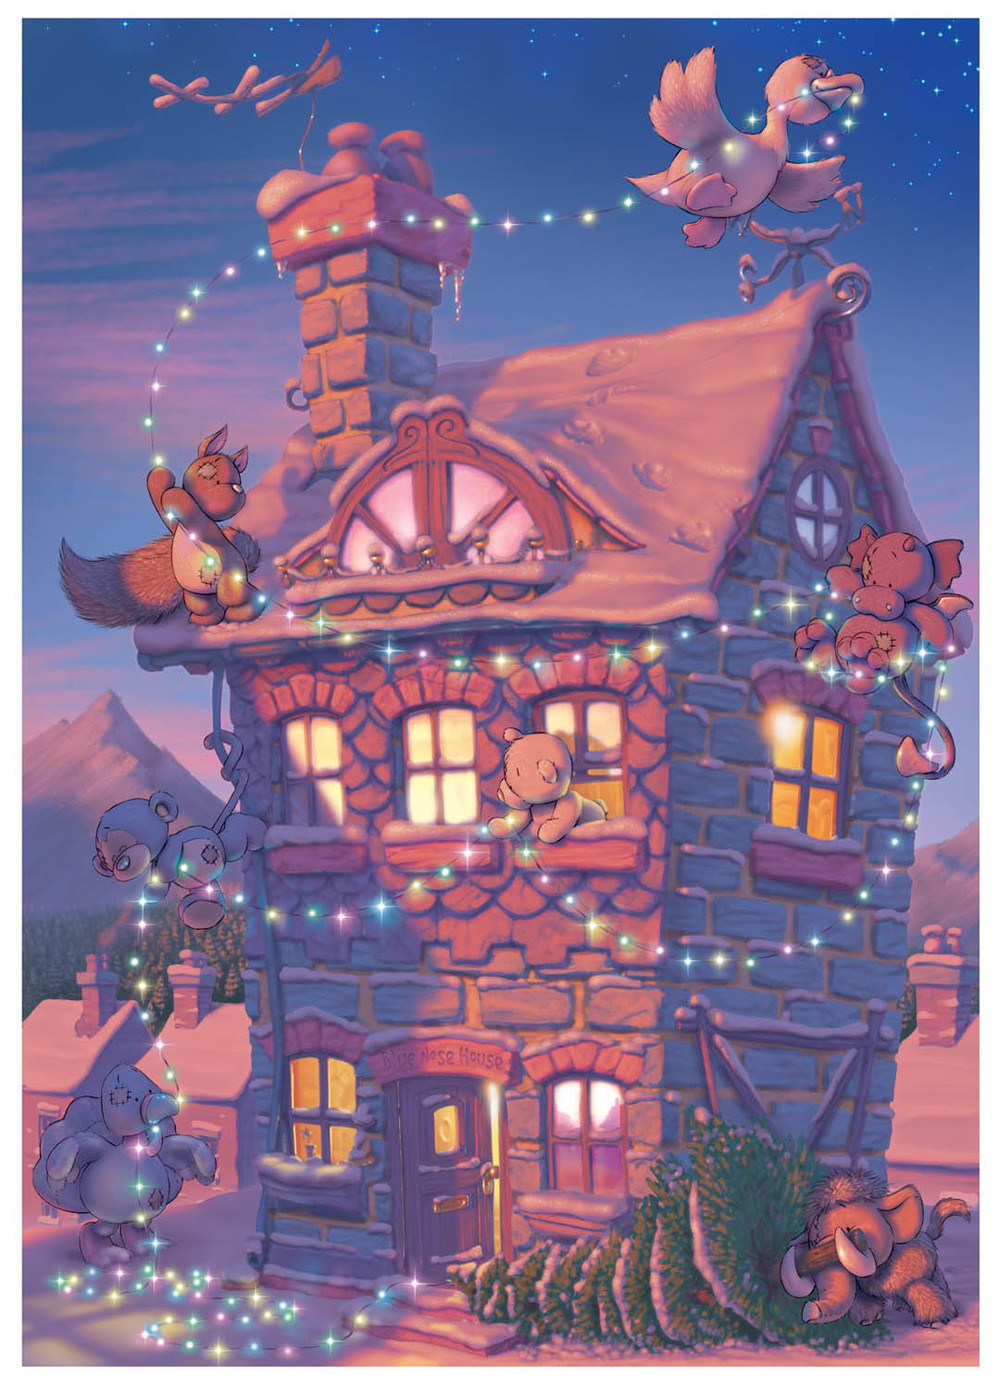 Illustration for use on an advent calendar (click to enlarge)